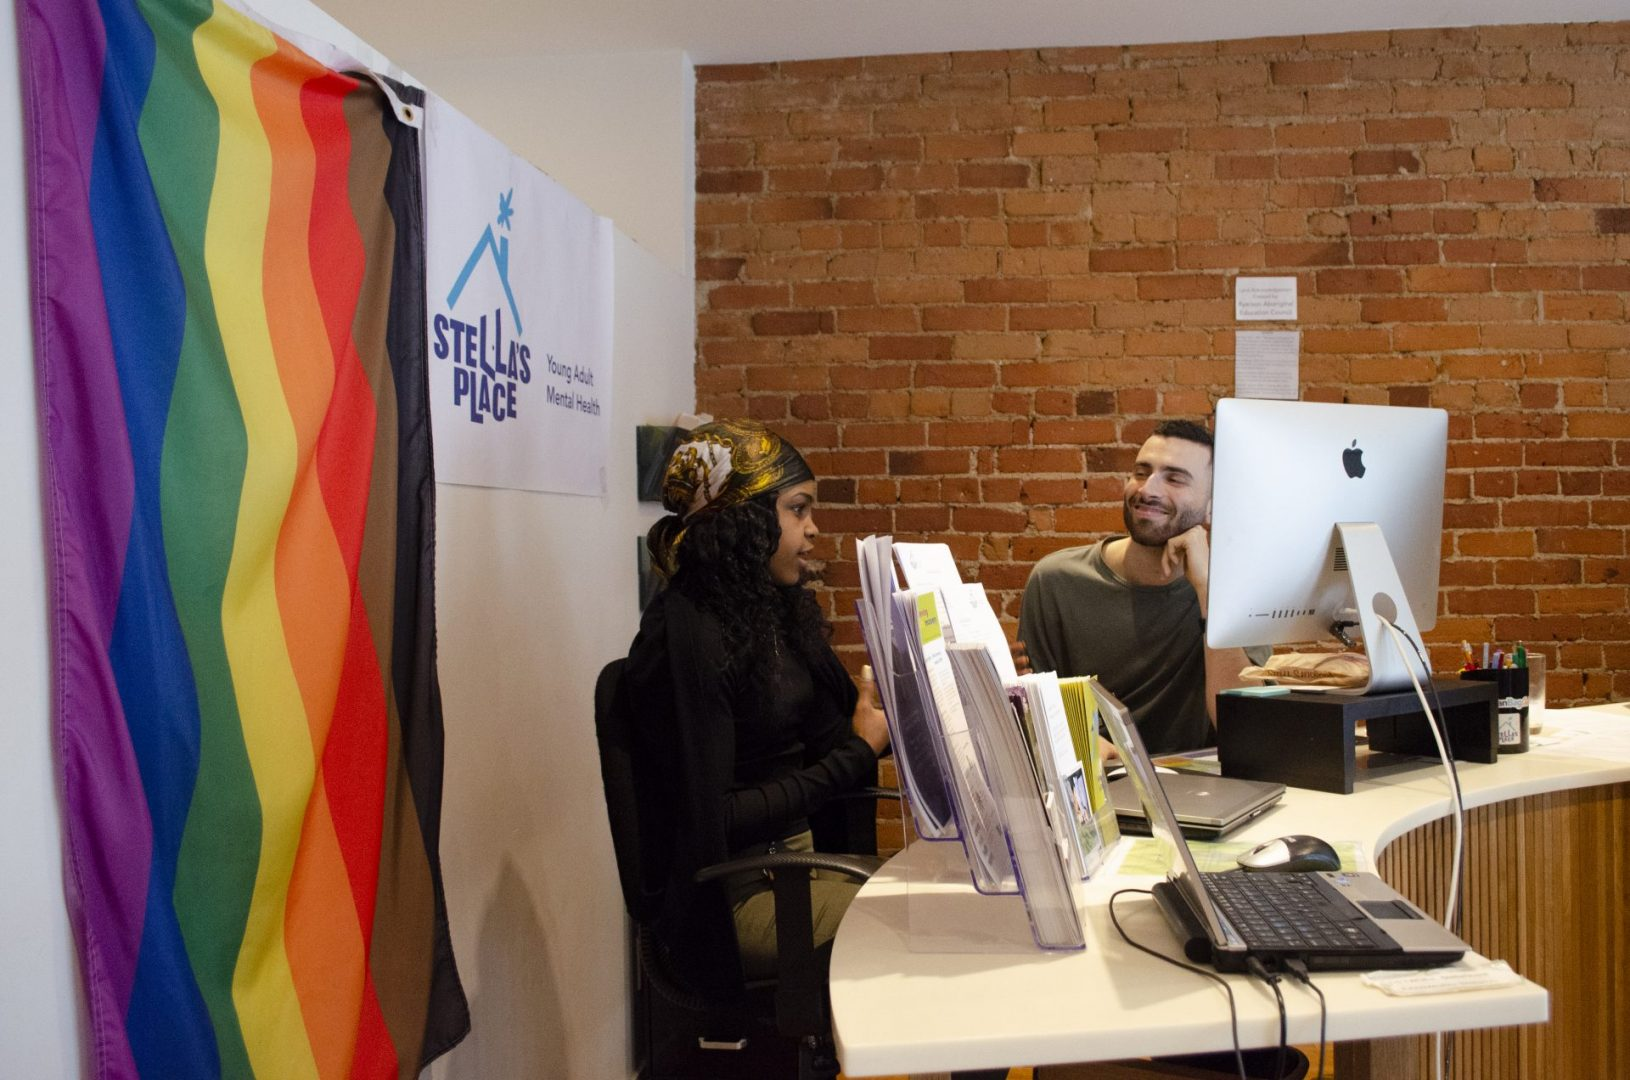 Two Stella's Place Access Coordinators sitting behind the front desk in Stella's Place front cafe space. The Access Coordinators are sitting down speaking to each other. Behind them is a large rainbow Pride Flag, a poster with Stella's Place logo and a red brick wall.